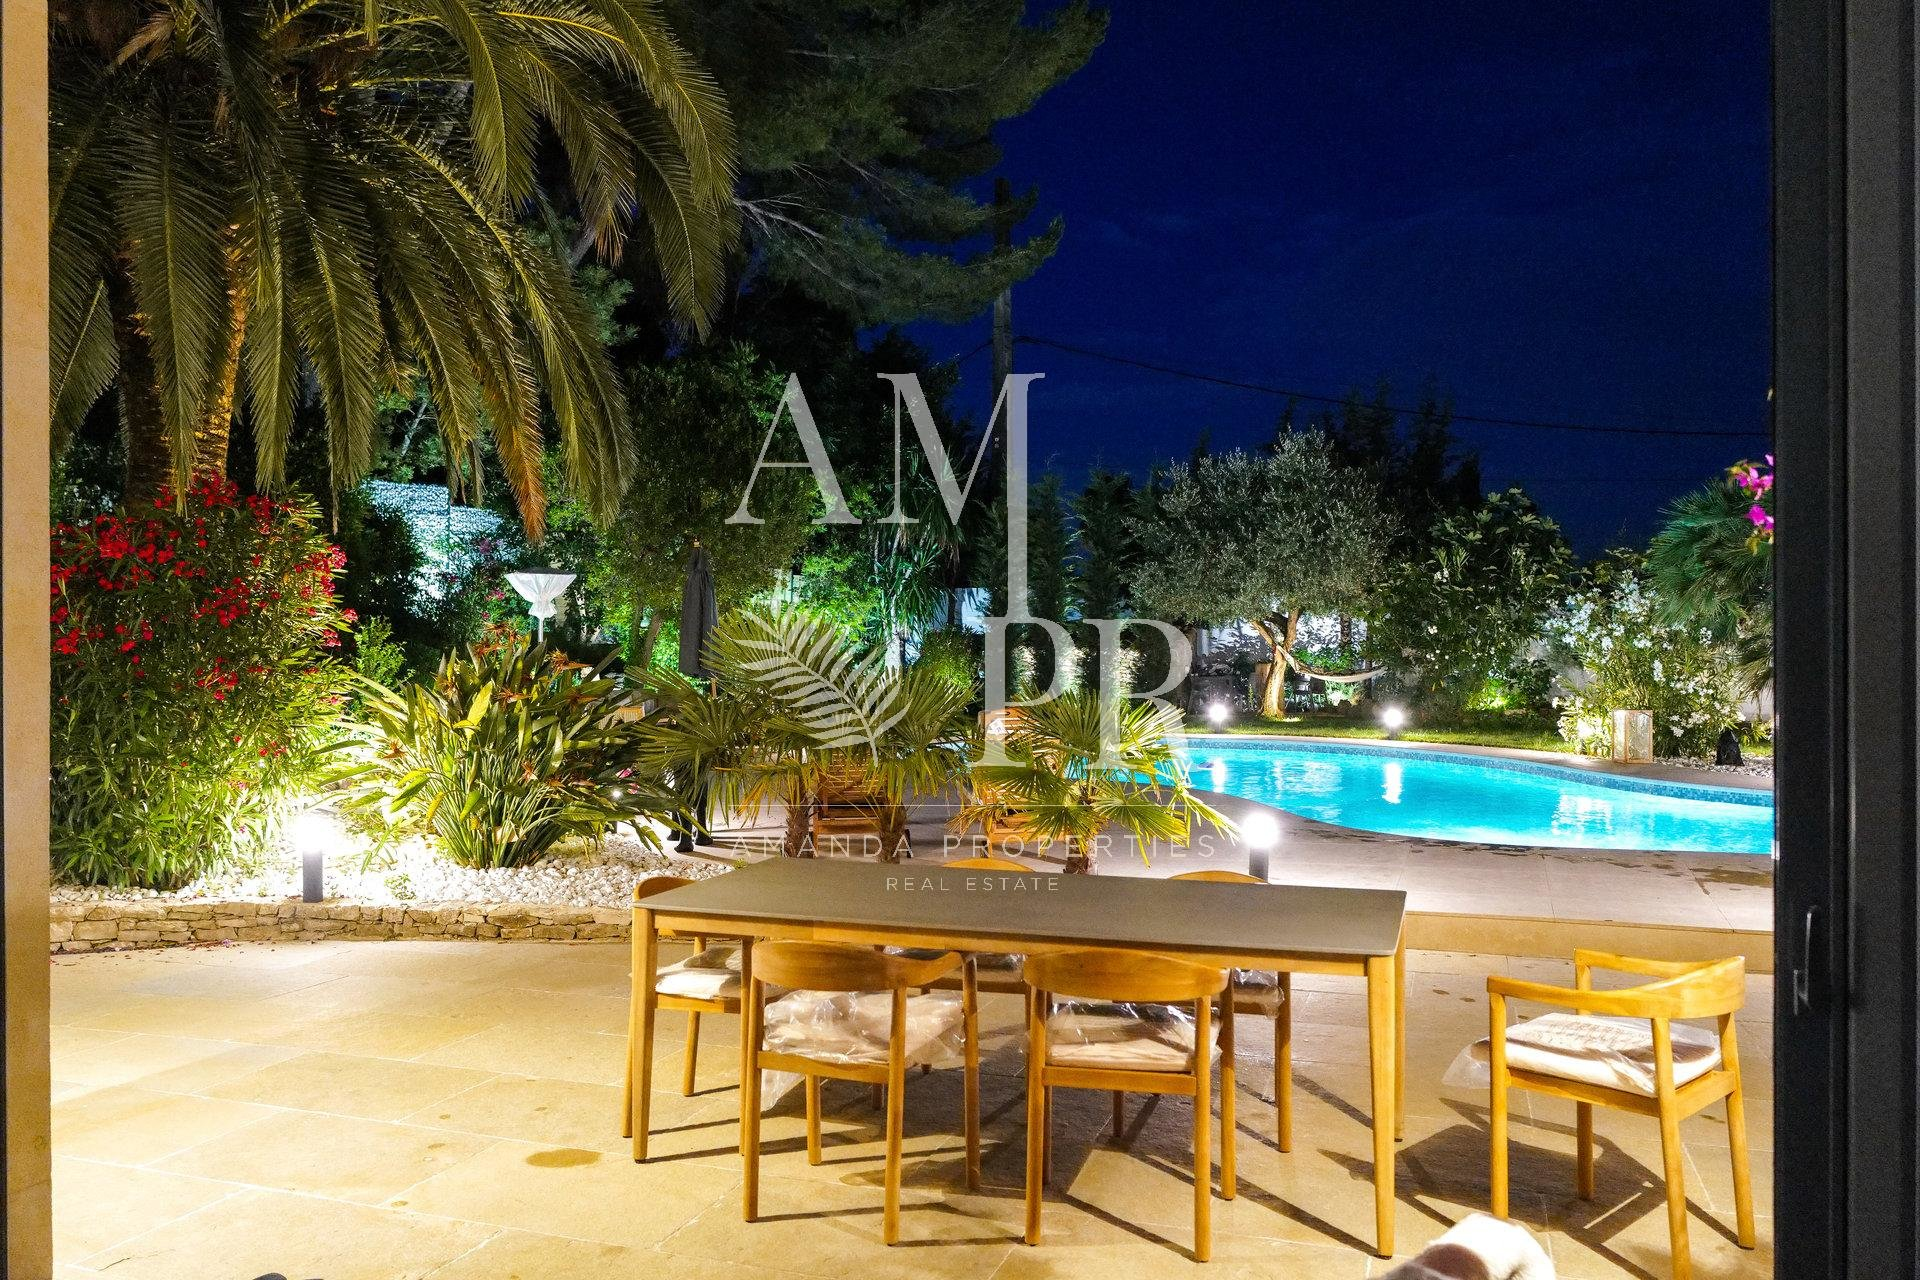 Luxurious property - sought after area